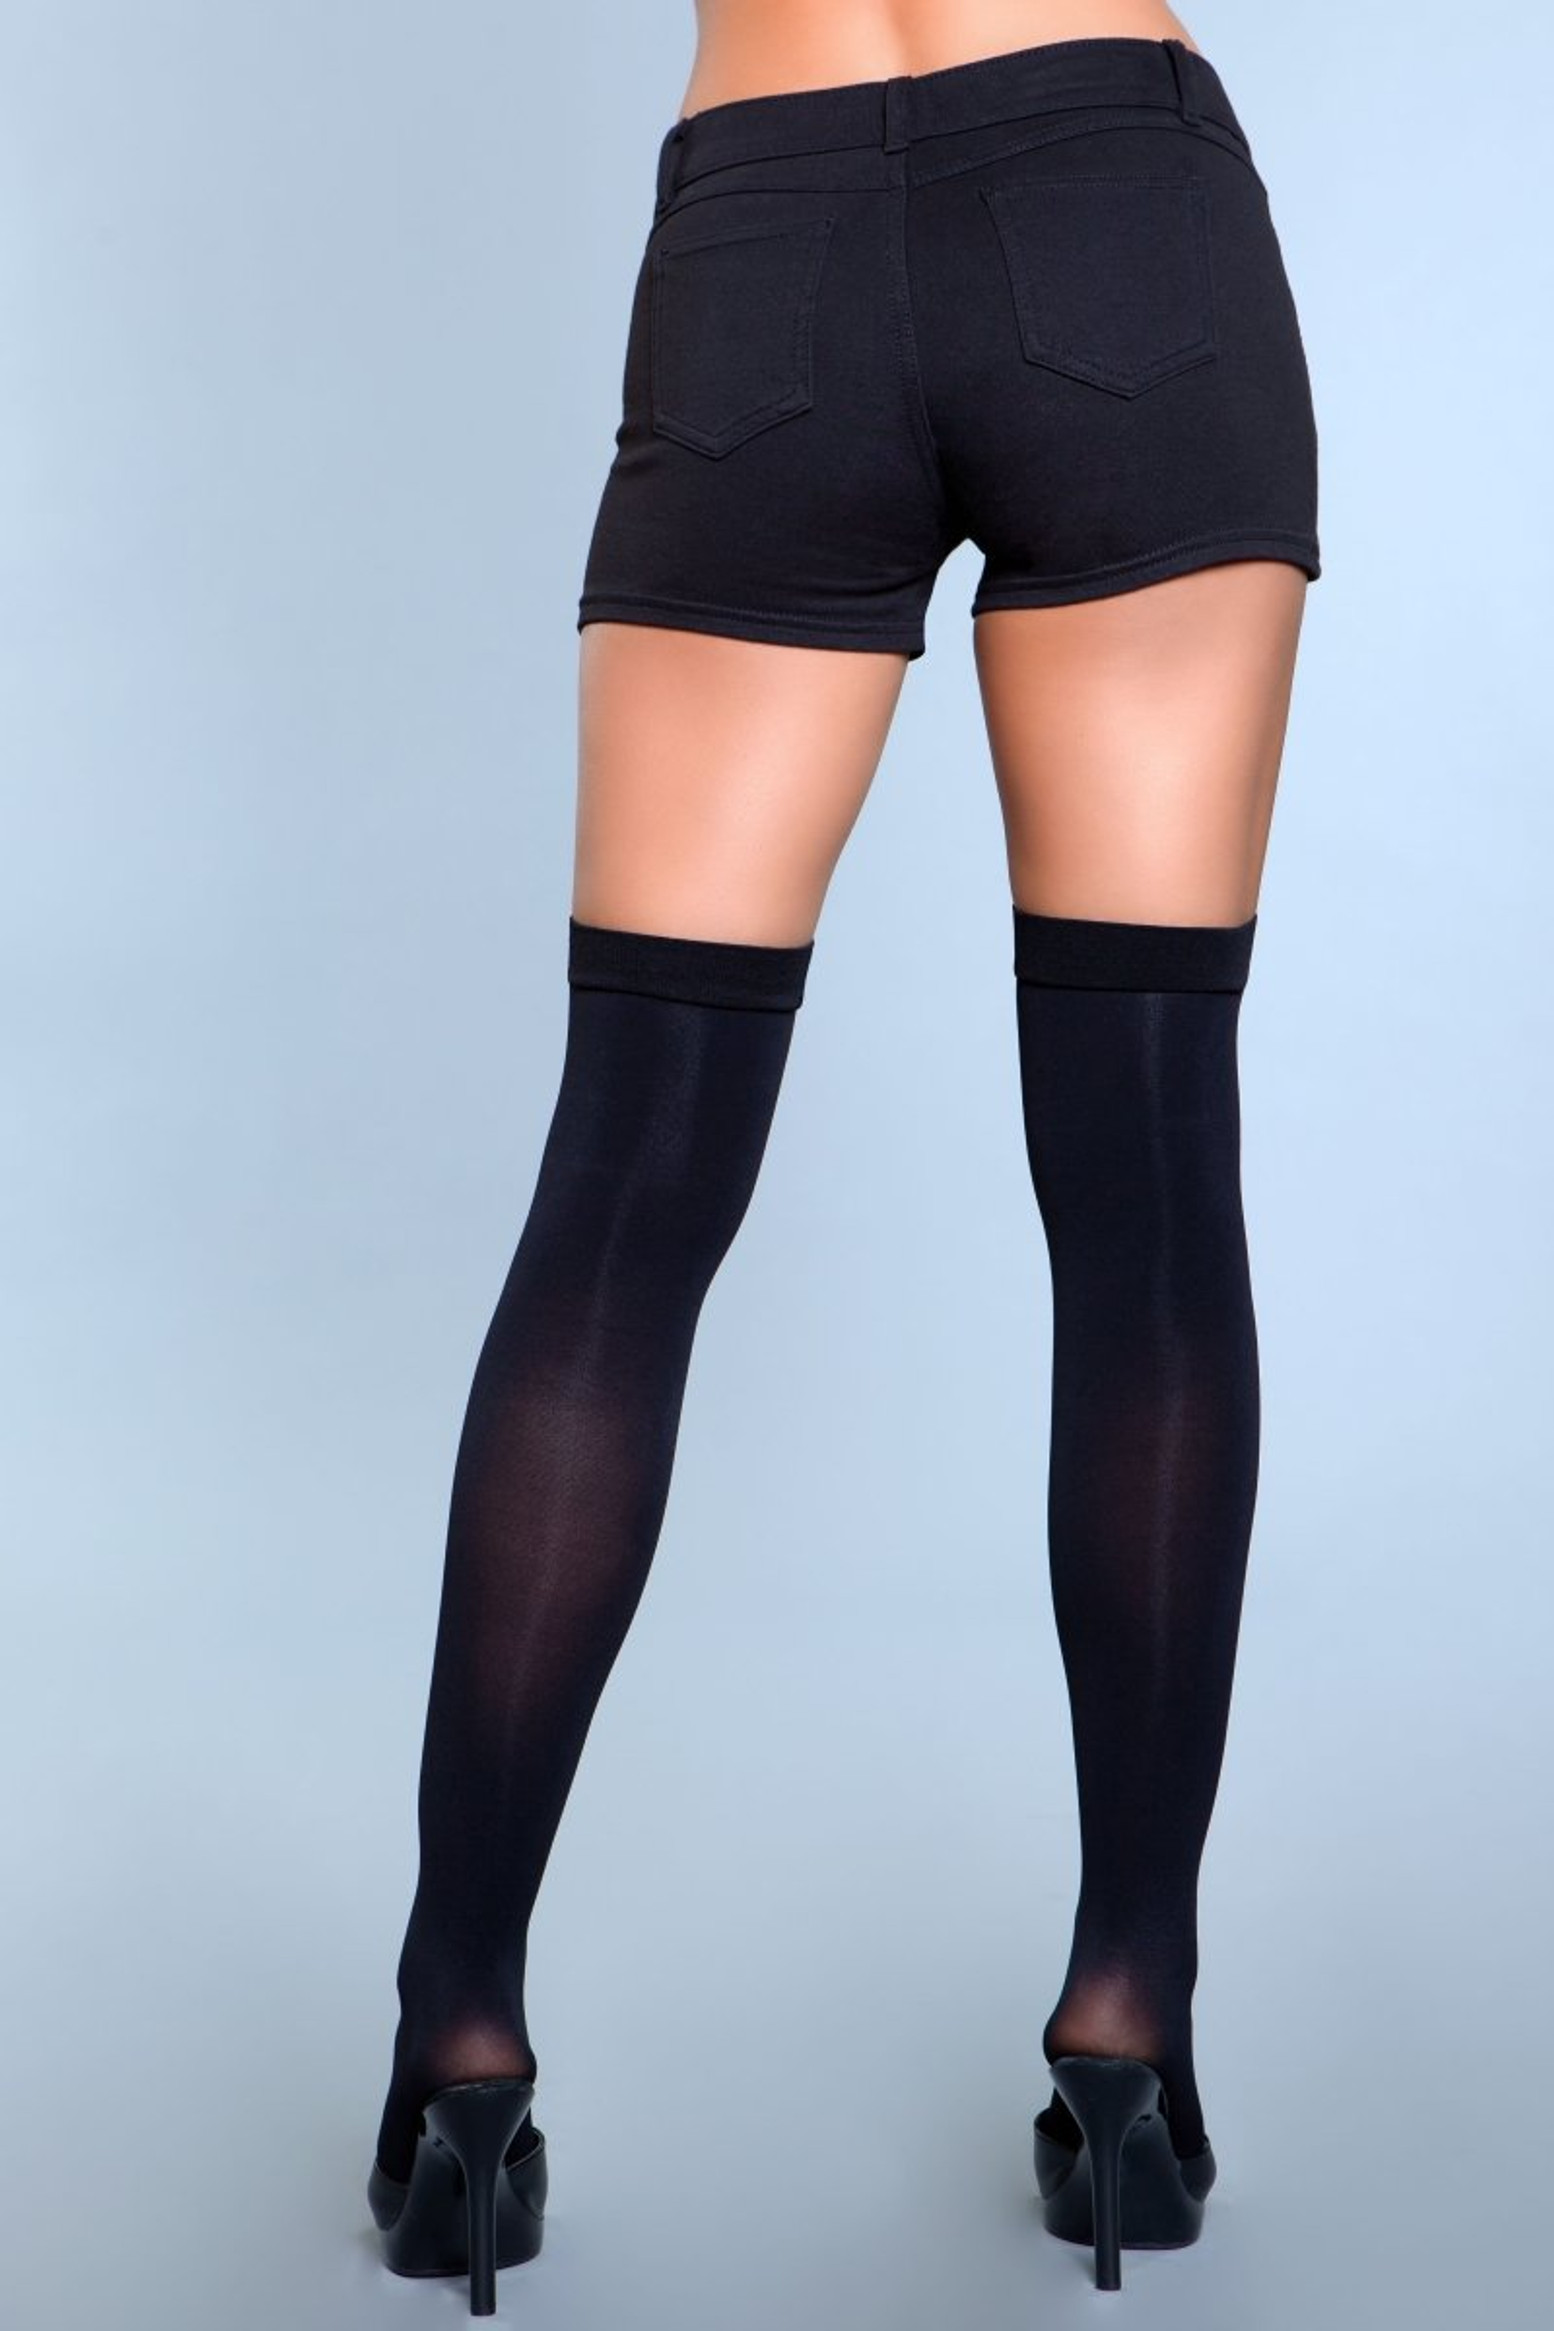 1929 Illusion Clip Garter Thigh Highs